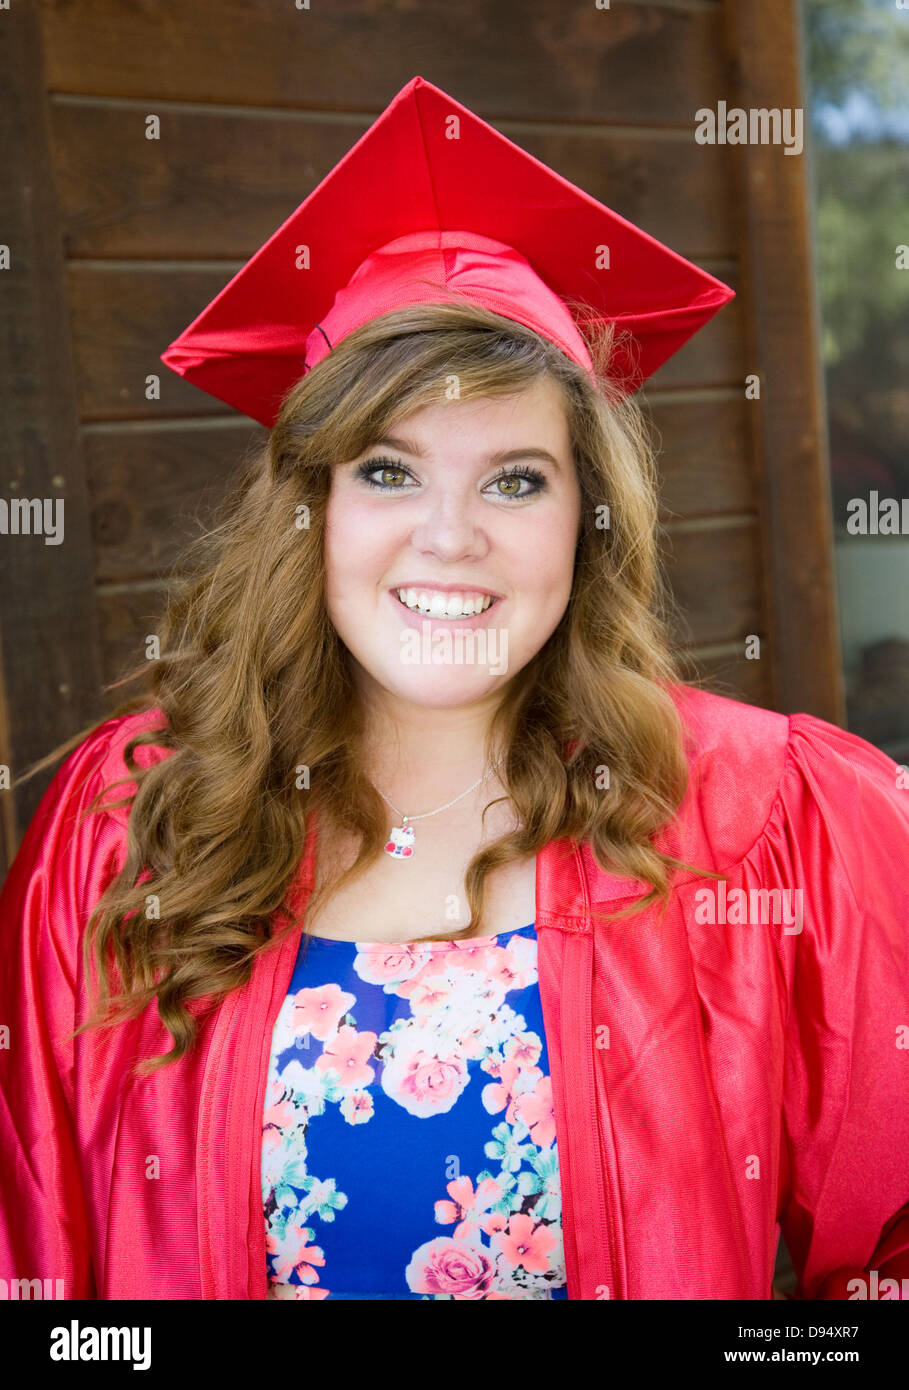 Senior In Graduation Gown Stock Photos & Senior In Graduation Gown ...